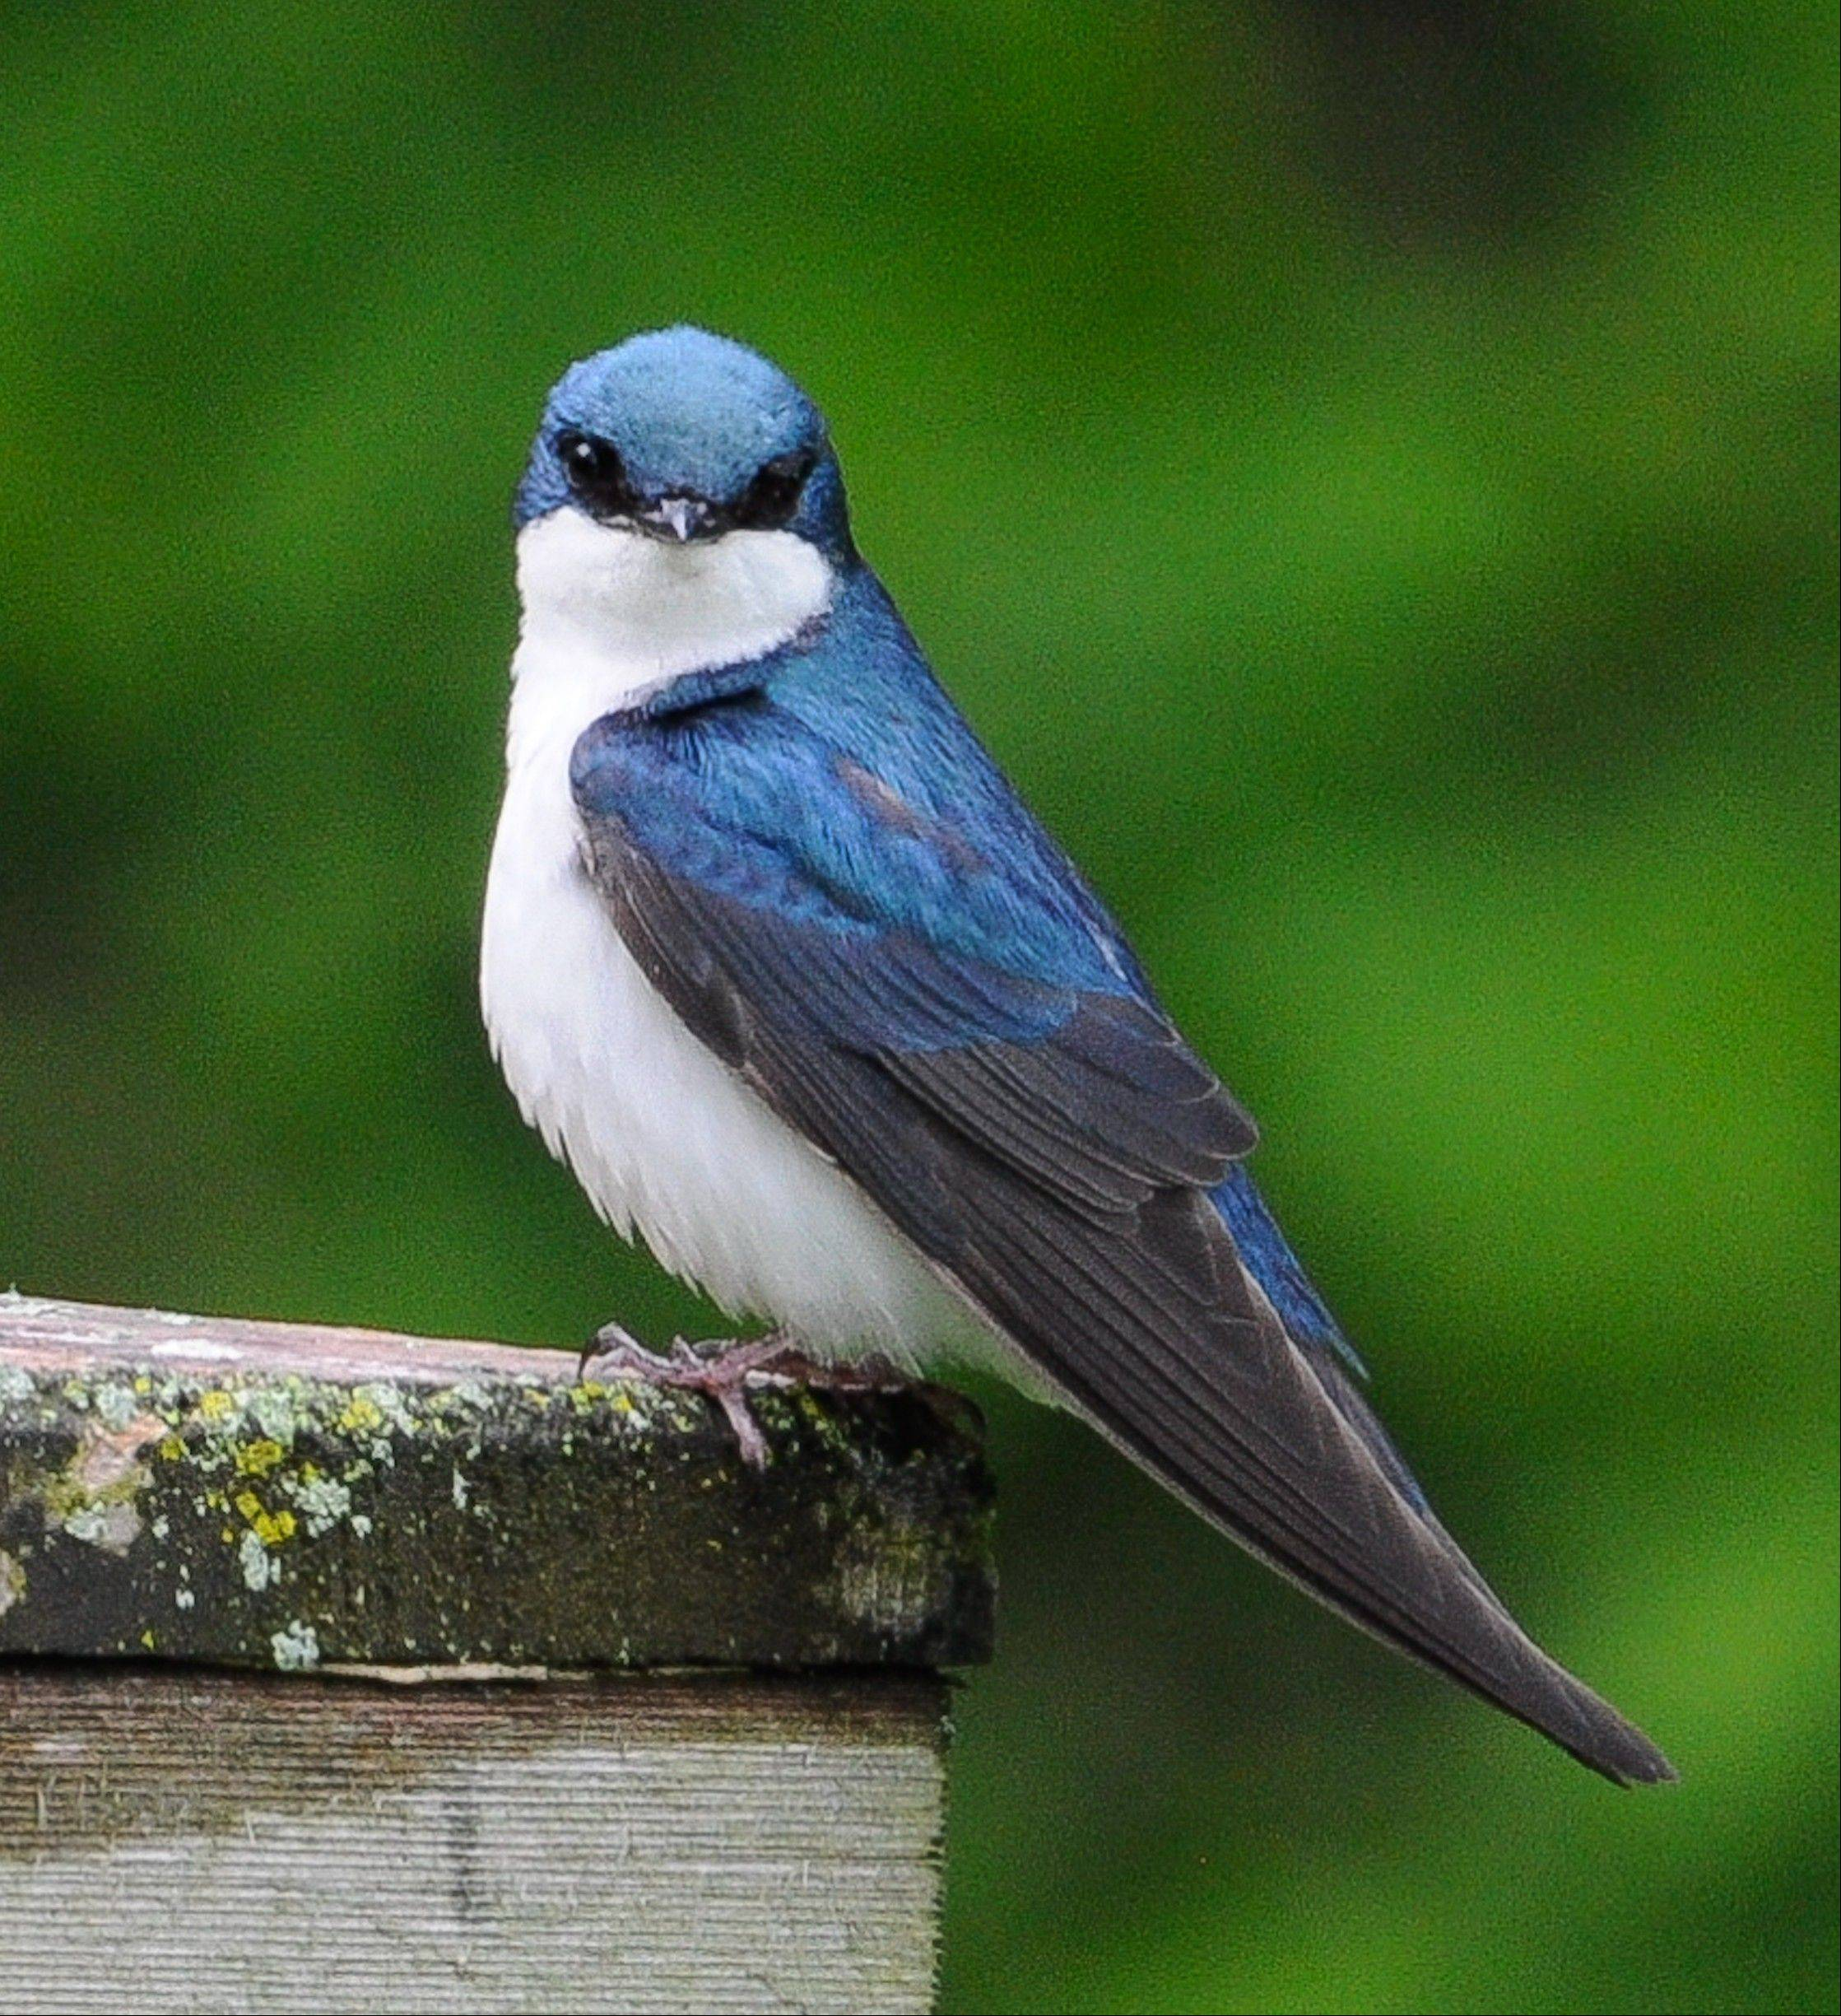 Certain birds can stop you in your tracks, like this tree swallow, photographed at Cantigny Park. It's a common species in DuPage County during spring and summer.